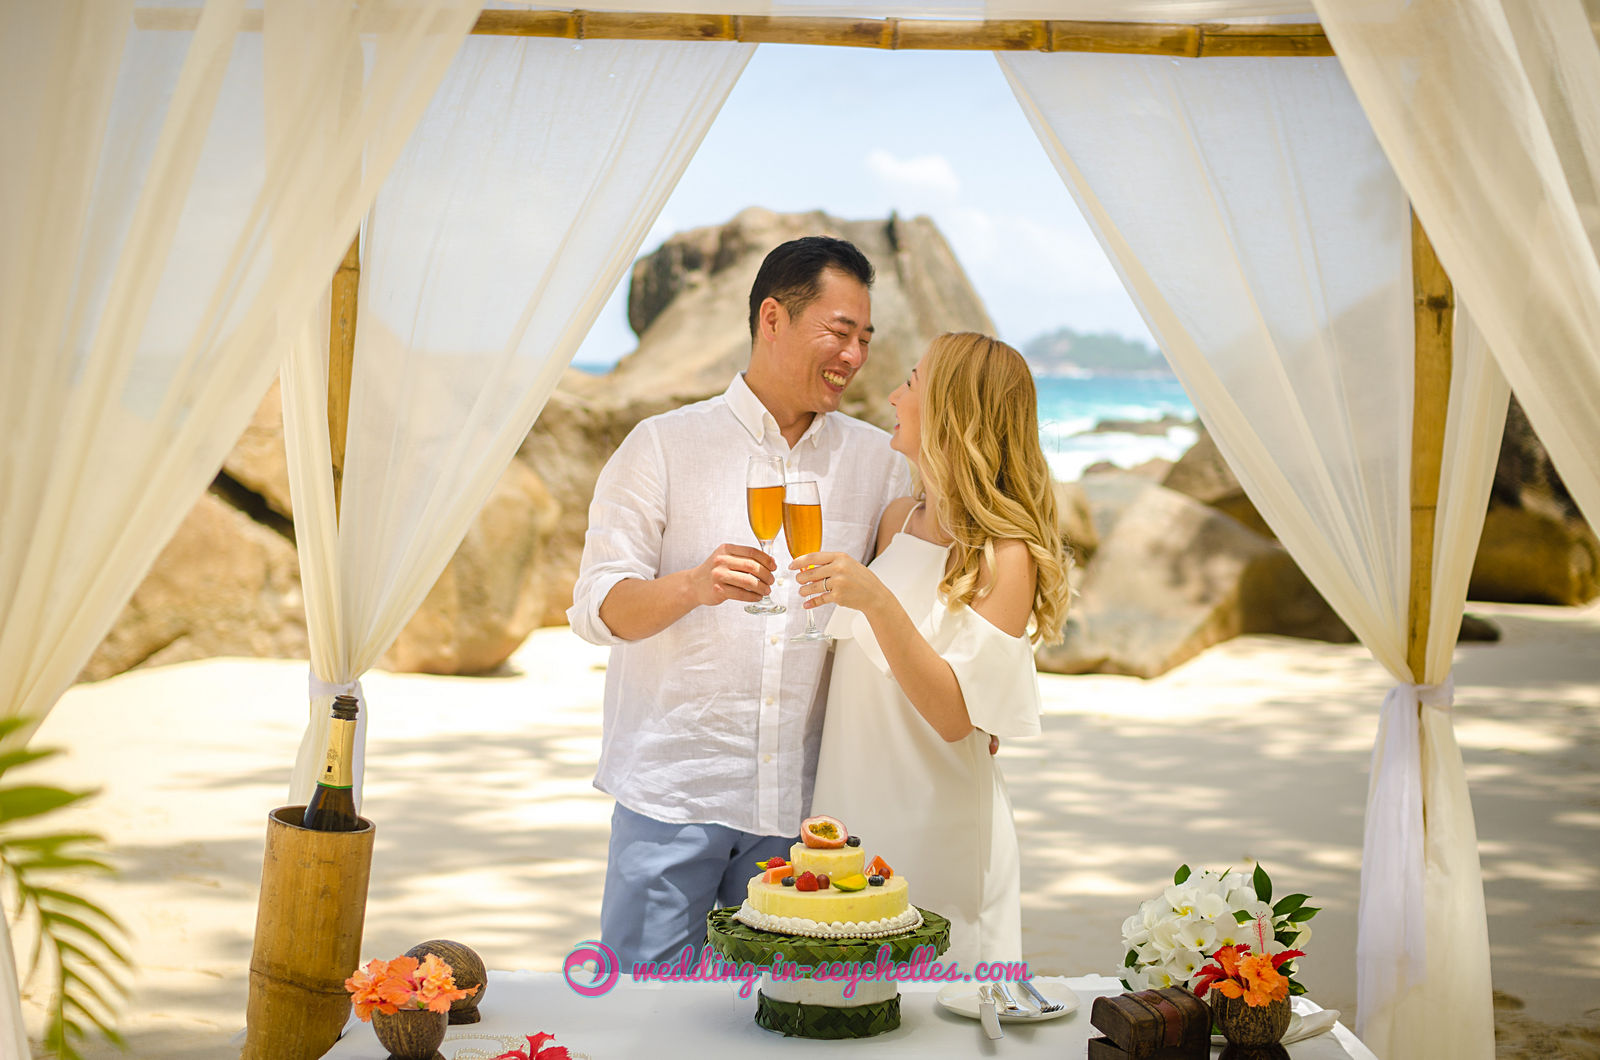 If You Are Looking For An All Inclusive Package We Do Also Offer Tours Including The Wedding Hotel Transfers Etc Check Out Our Easy Expat Packages